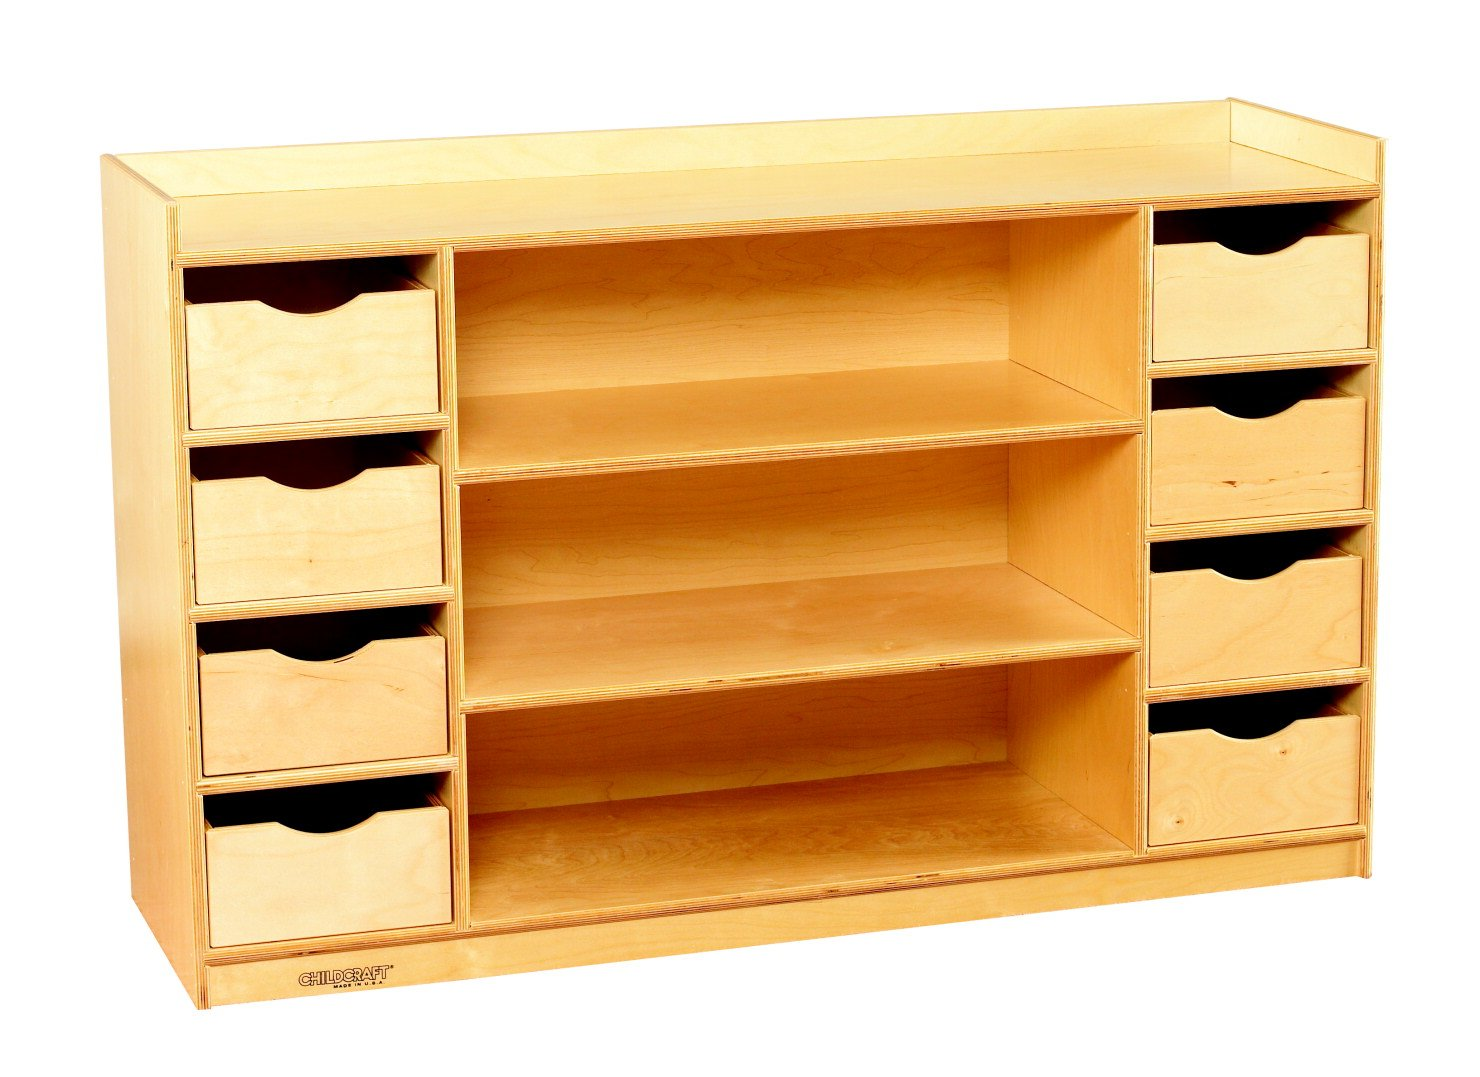 Childcraft 1464417 Storage Chest with 8 Drawers, Wood, 47-3/4'' x 14-1/4'' x 30'', Natural Wood Tone